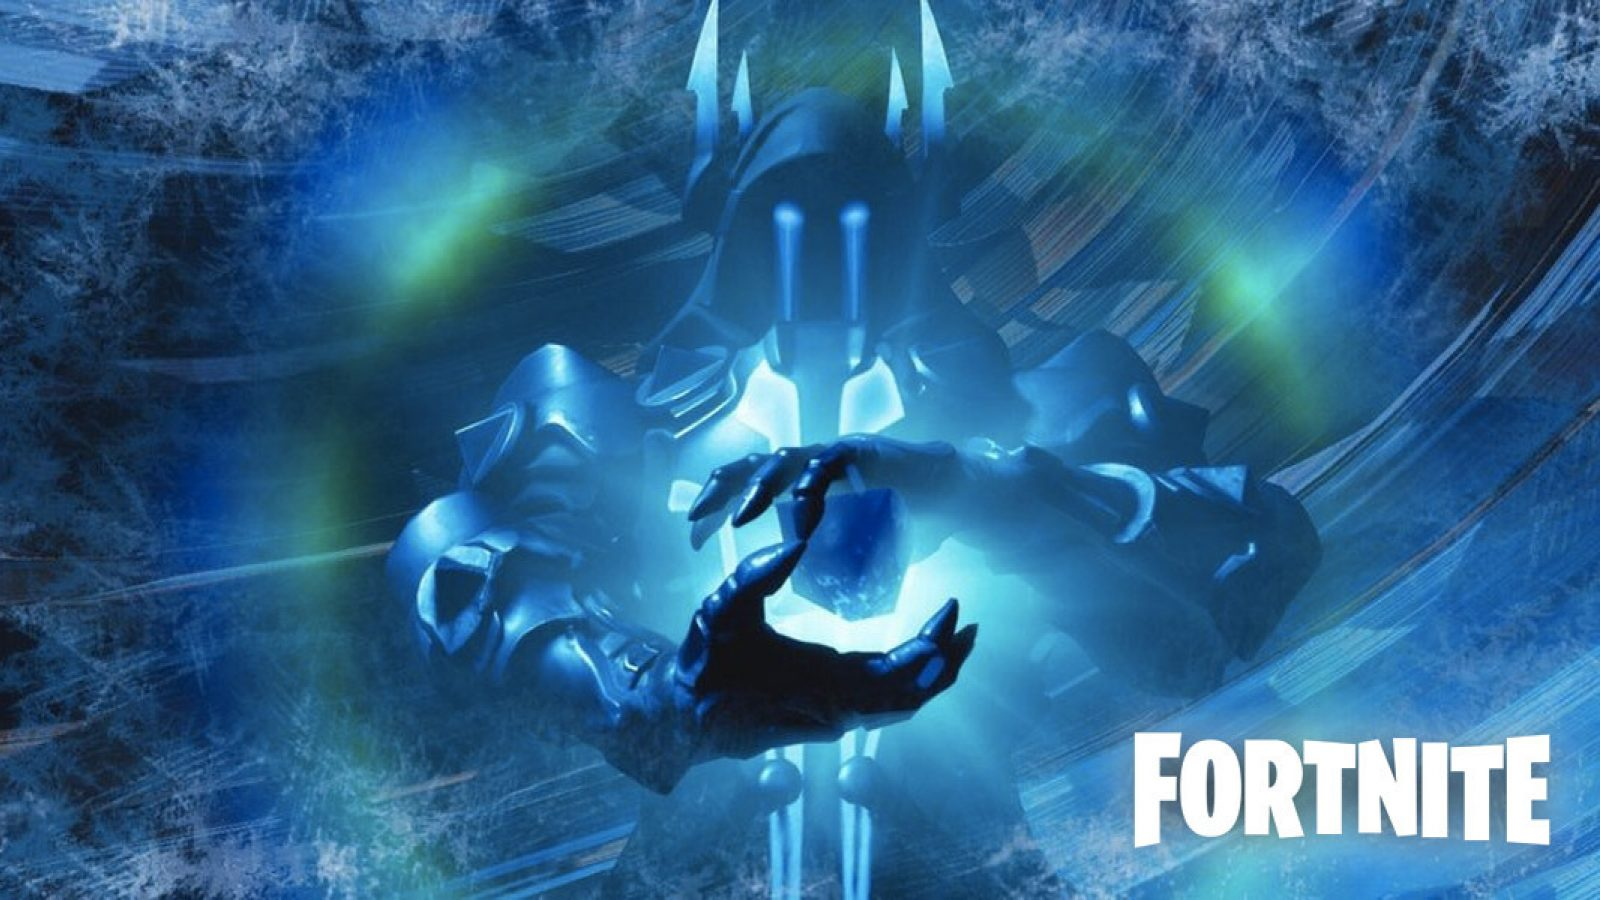 Free Download Ice Storm Ltm Added To Fortnite With Ice Sphere Live Event 1600x900 For Your Desktop Mobile Tablet Explore 16 The Ice King Fortnite Wallpapers The Ice King